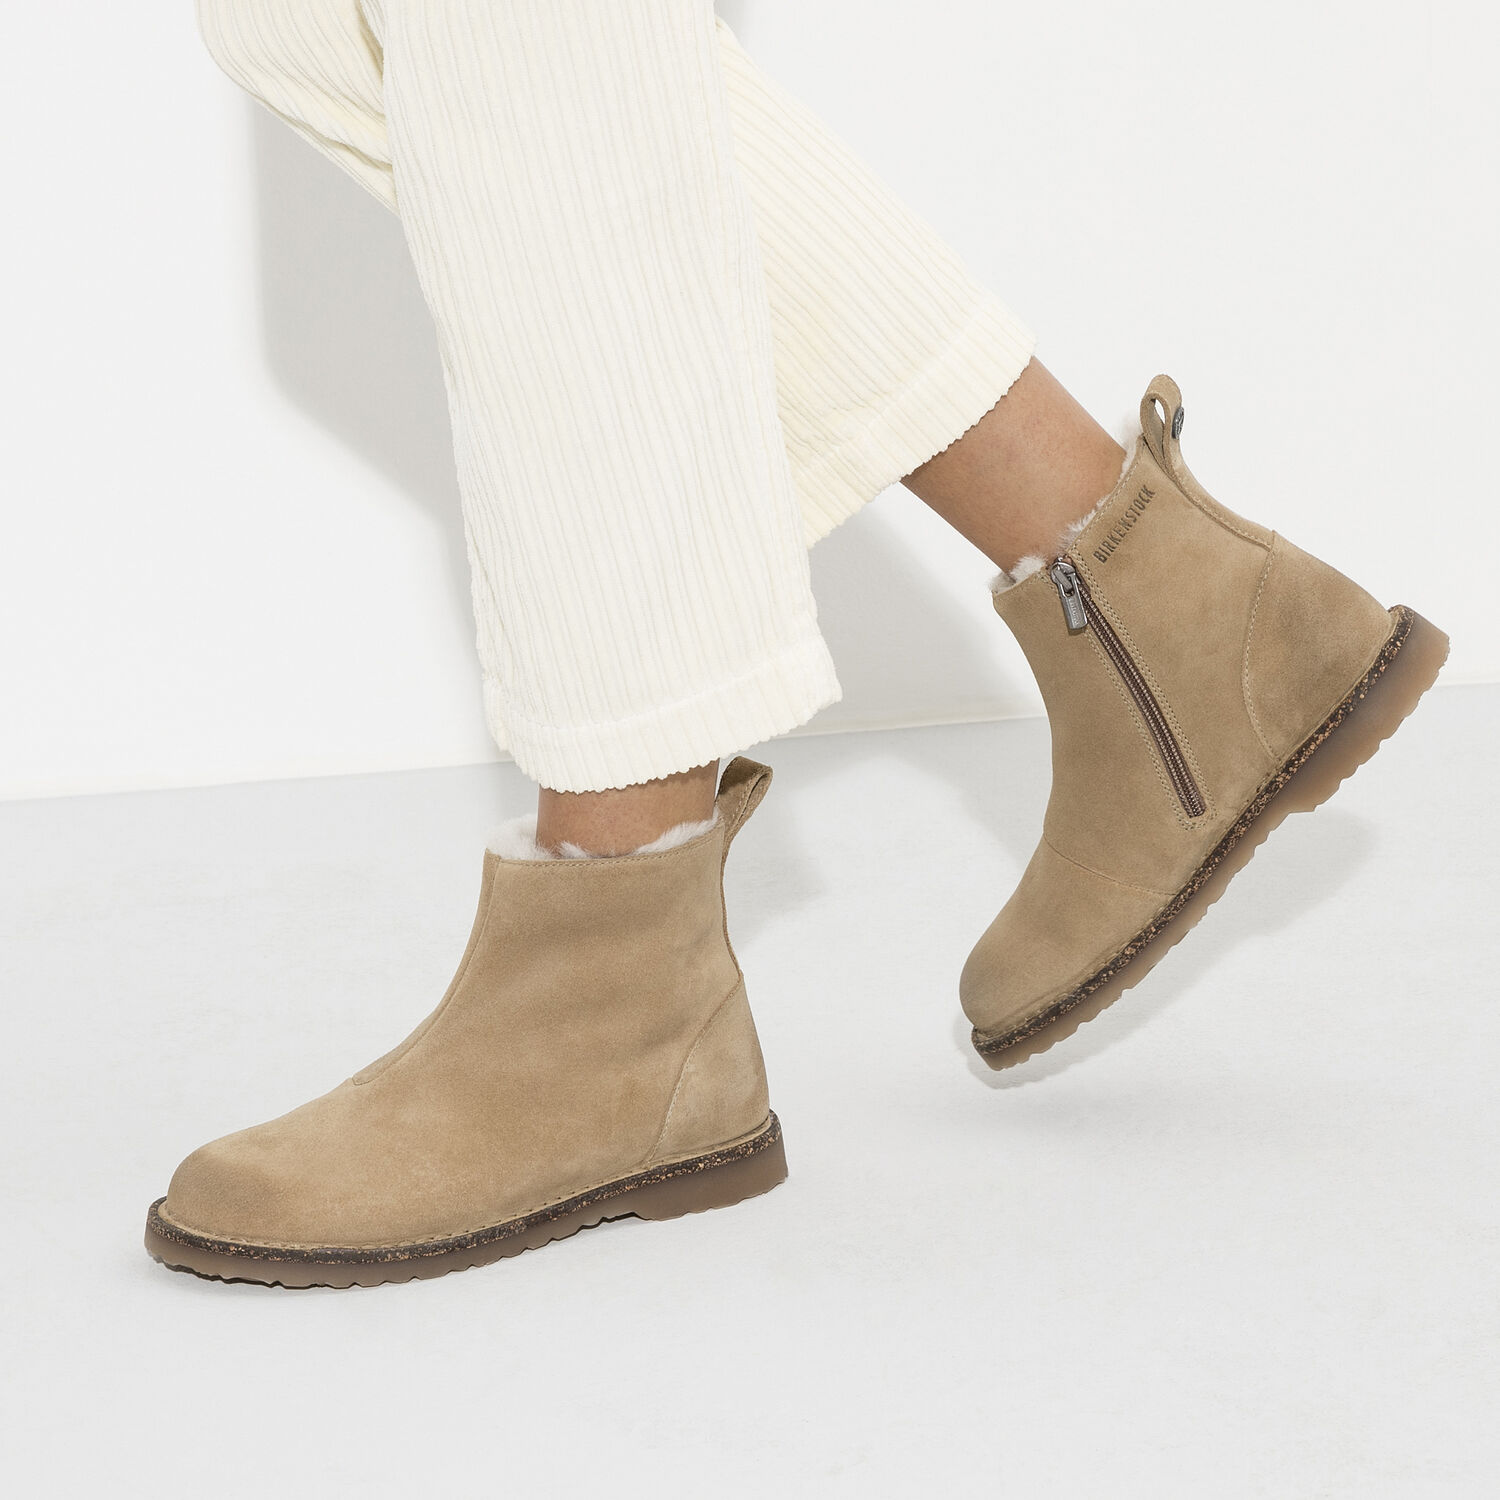 Melrose Shearling  Suede Leather